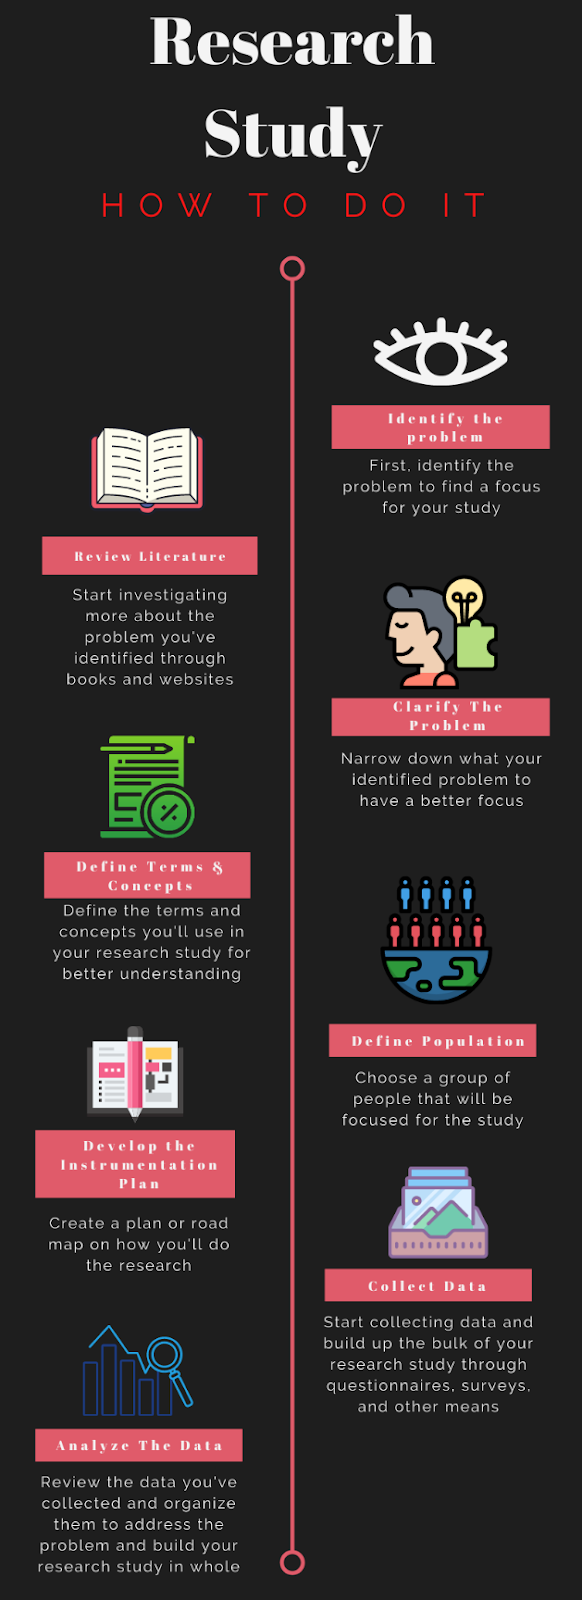 How to do Research Study